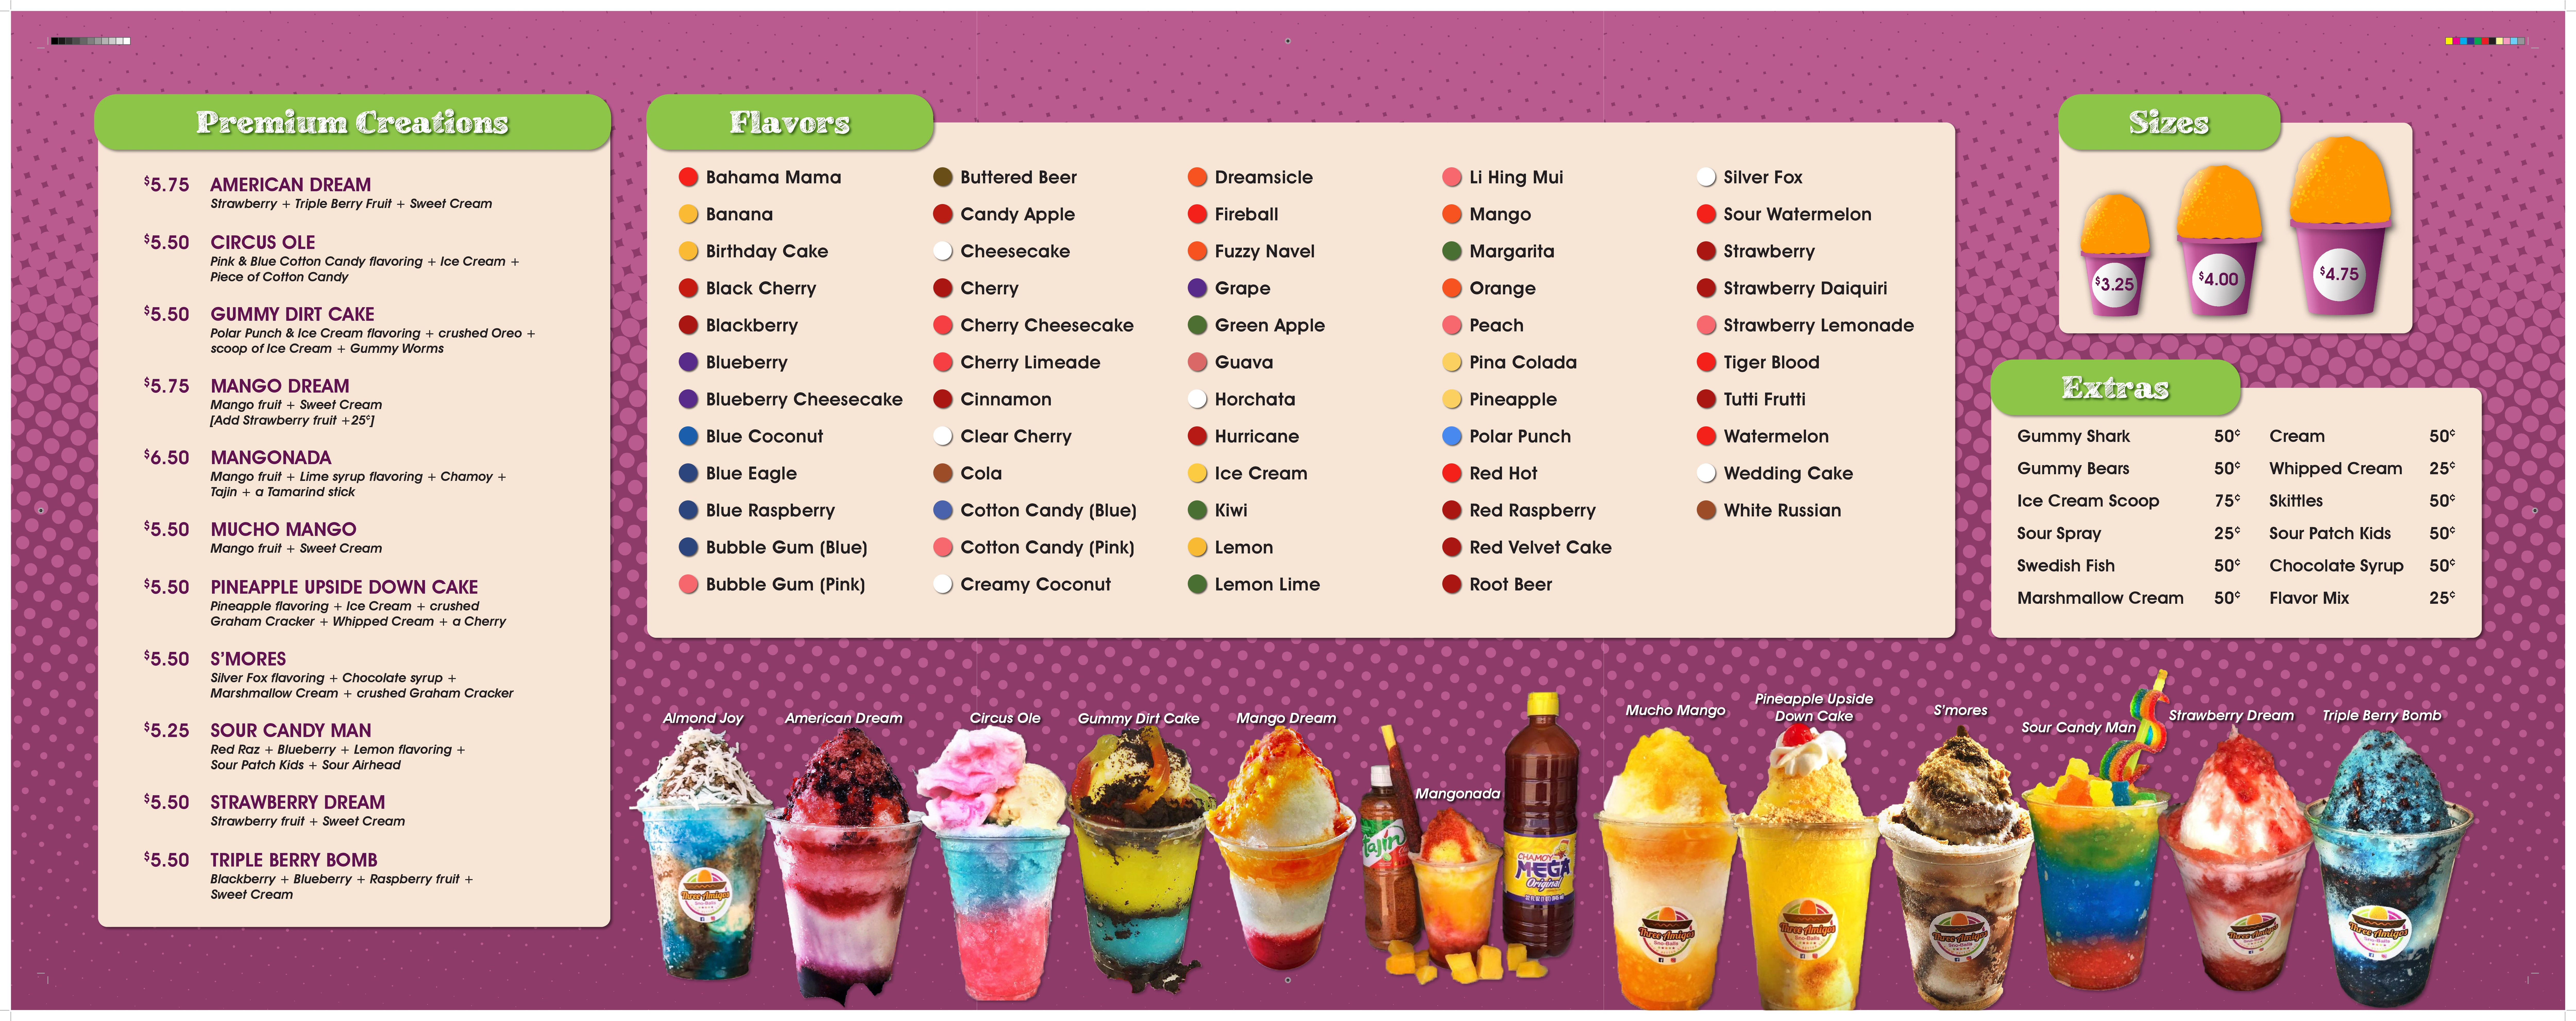 Attractive Menu Design for Shaved Ice Food Truck